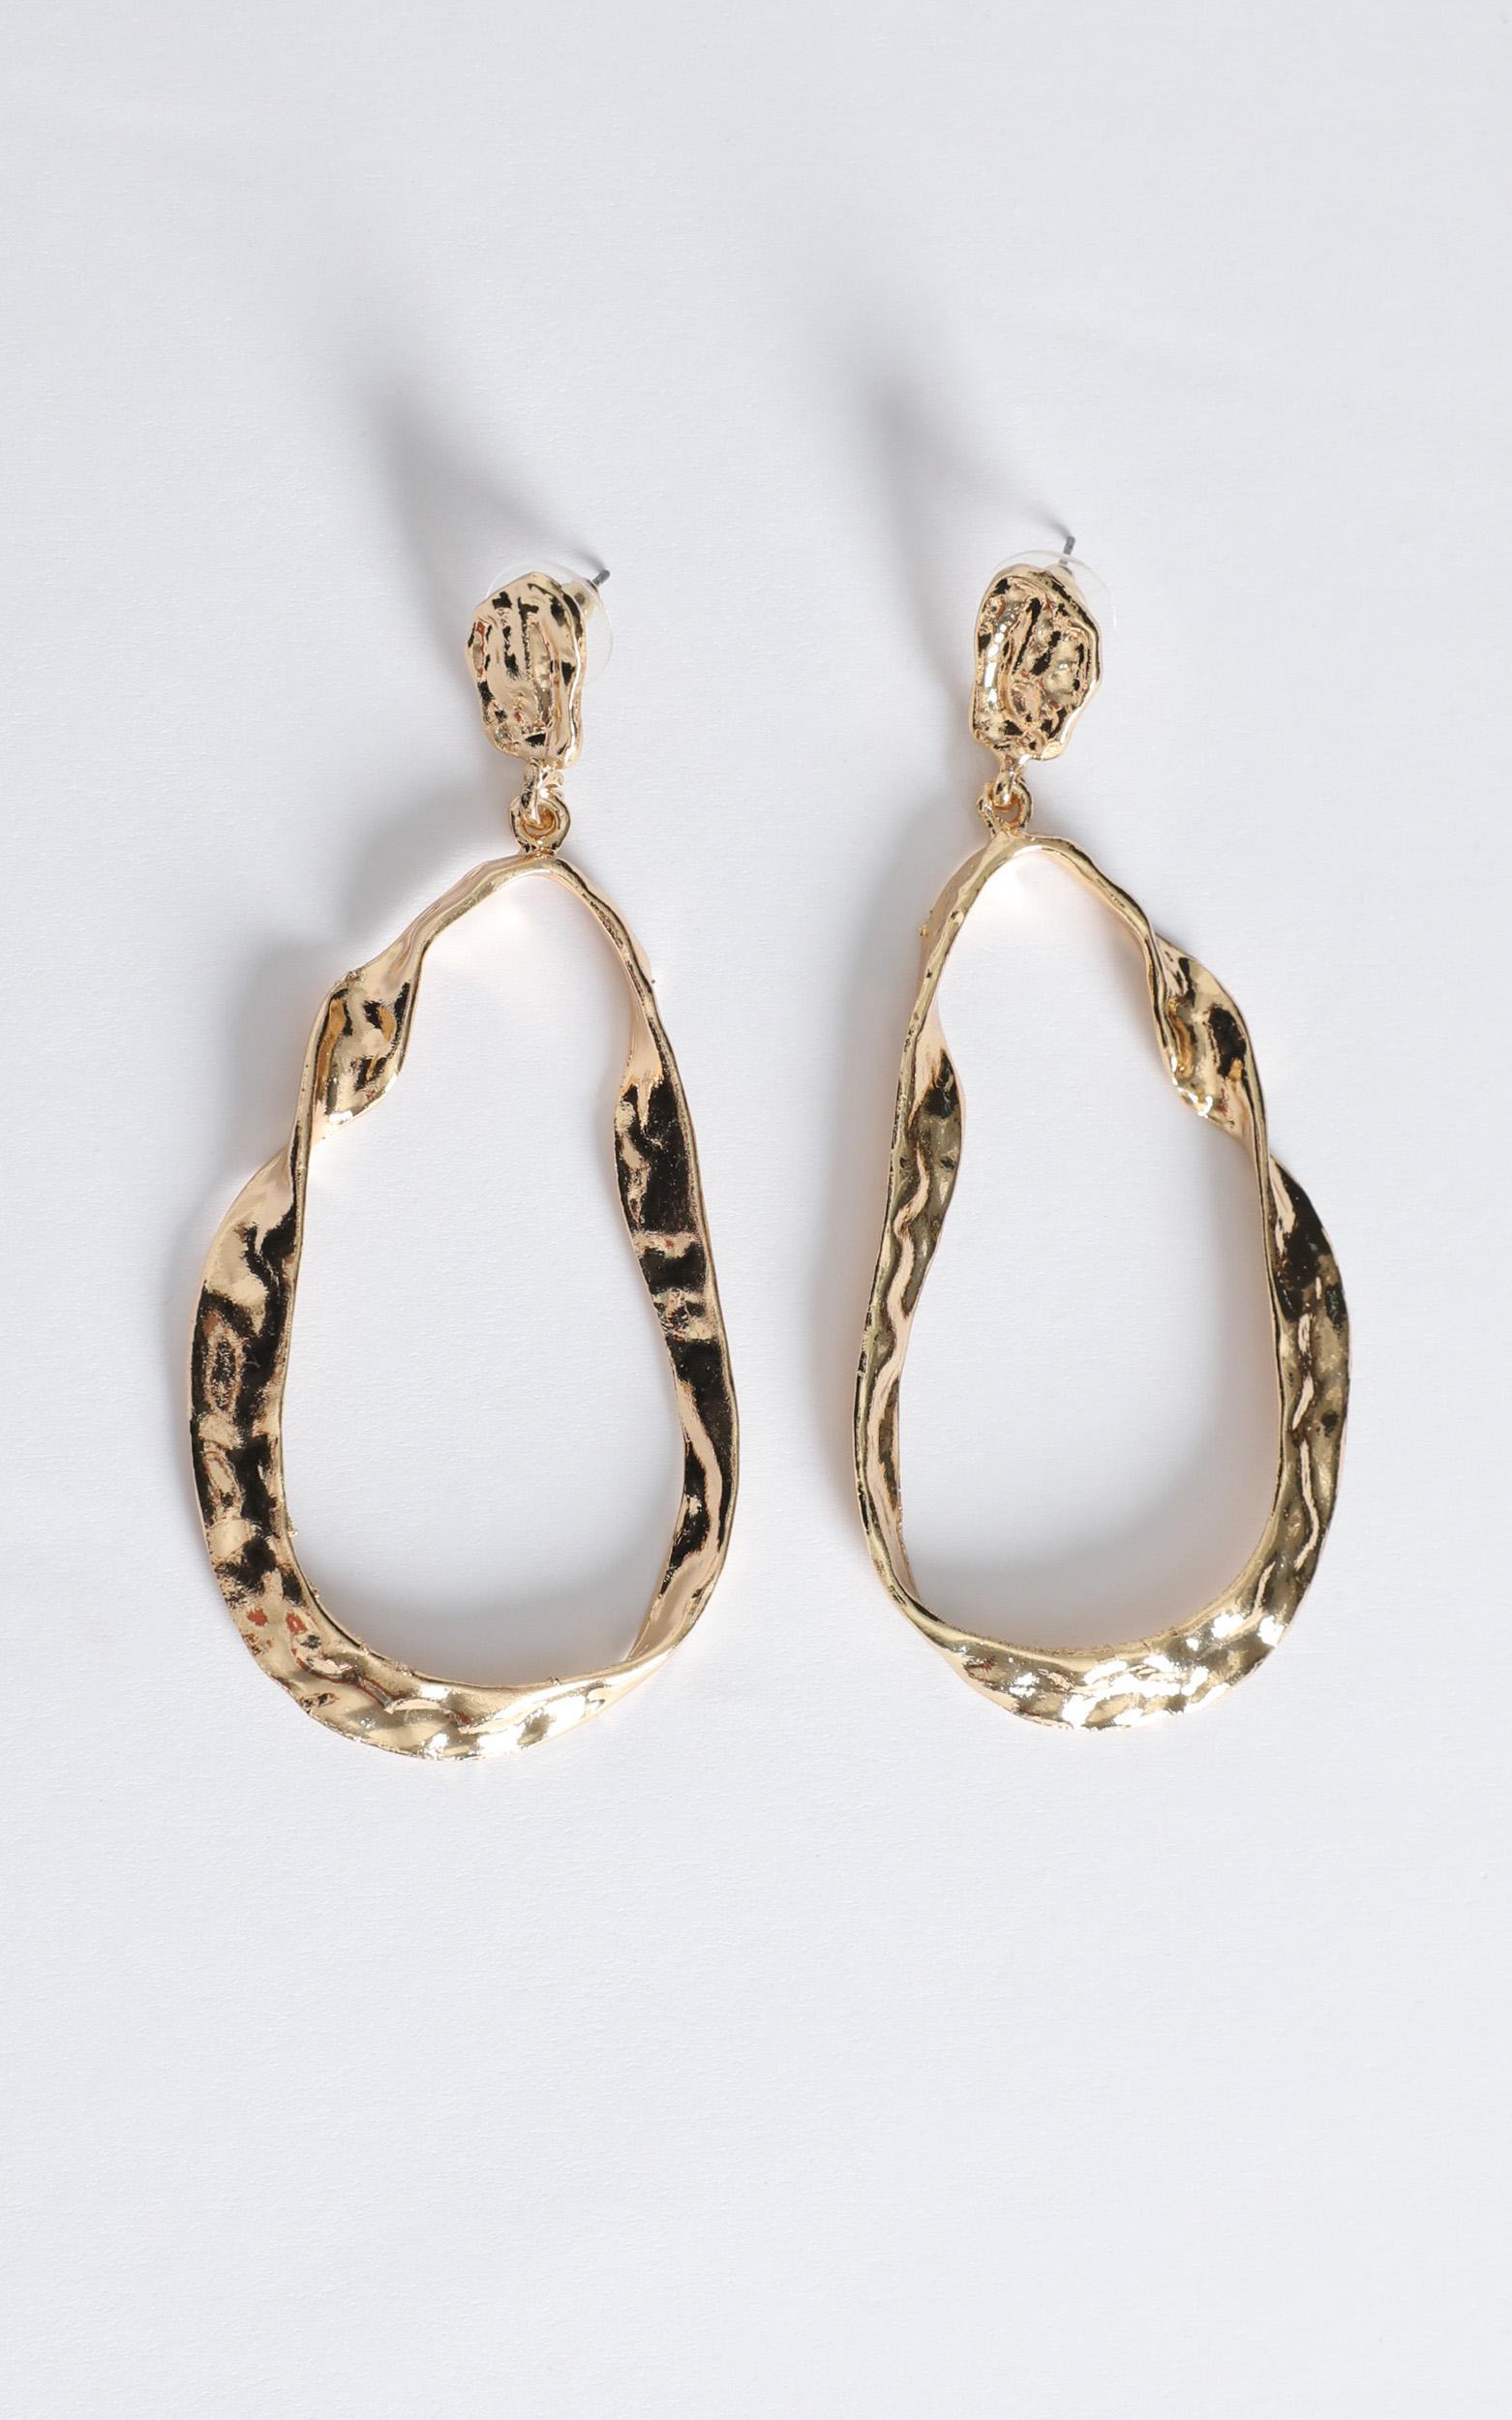 Onyx Drop Earrings in Gold, , hi-res image number null